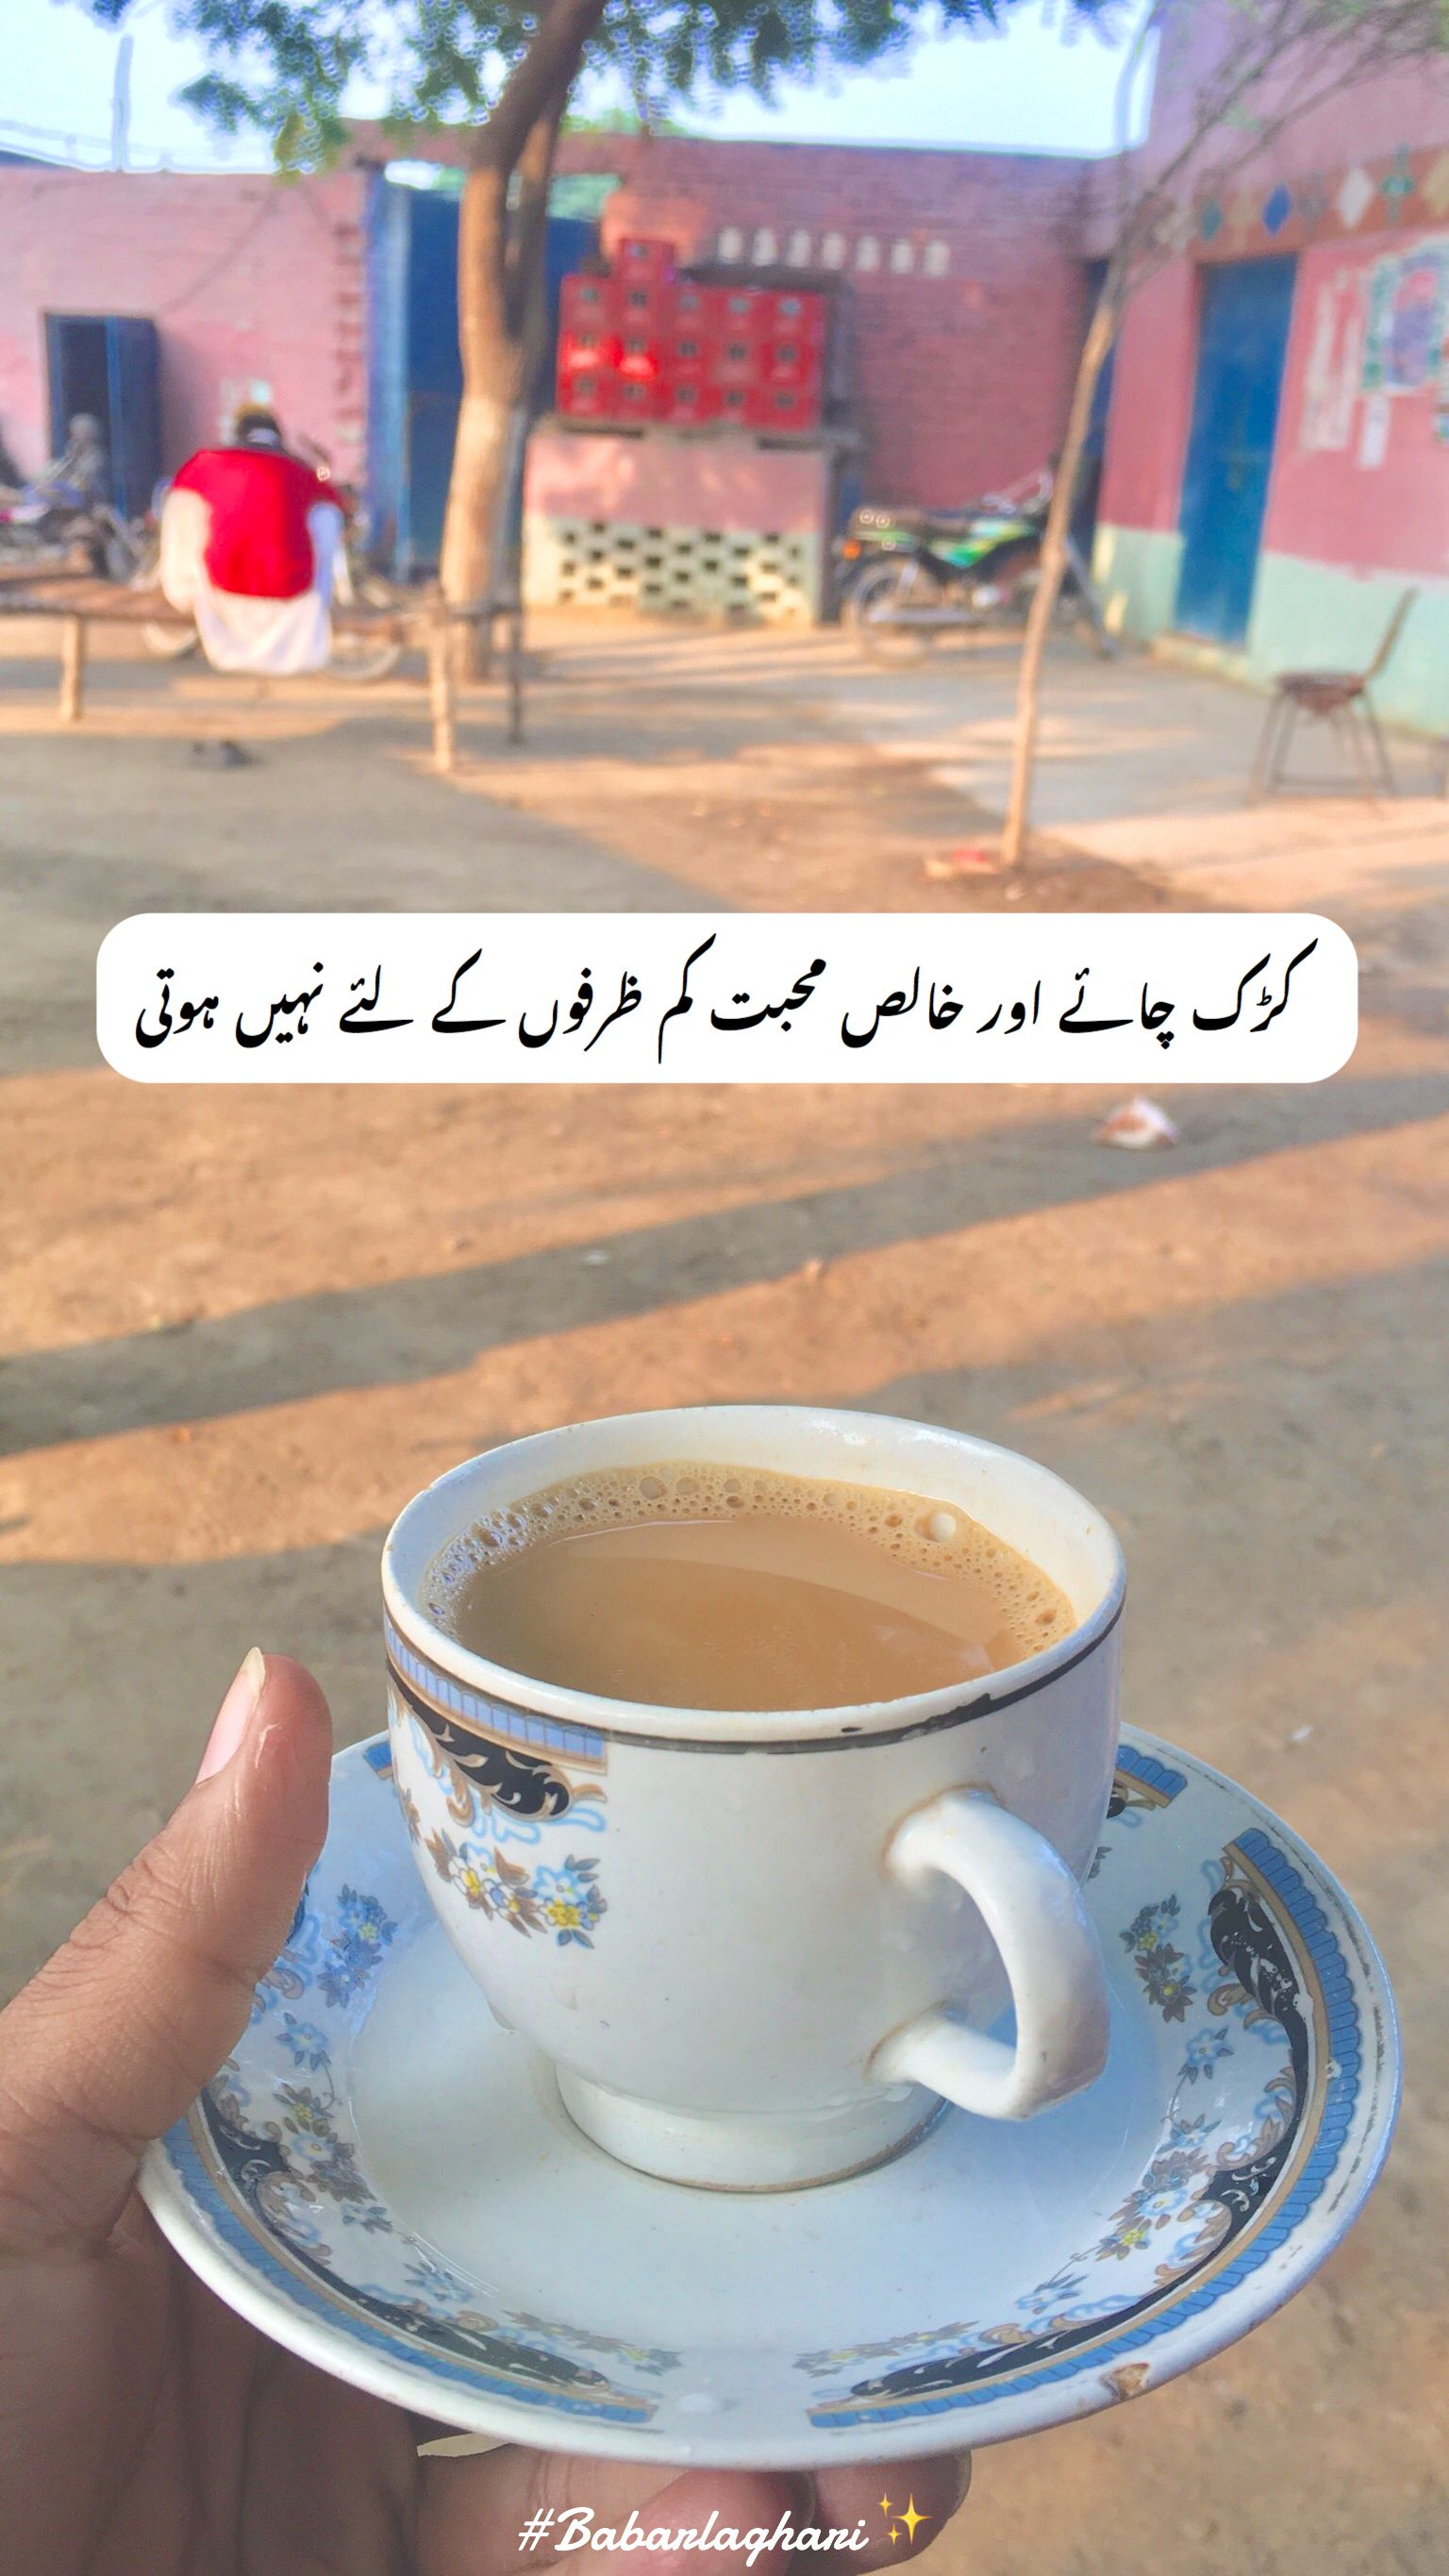 Pin by Babar Laghari on Urdu Quotes (With images) | Tea ...